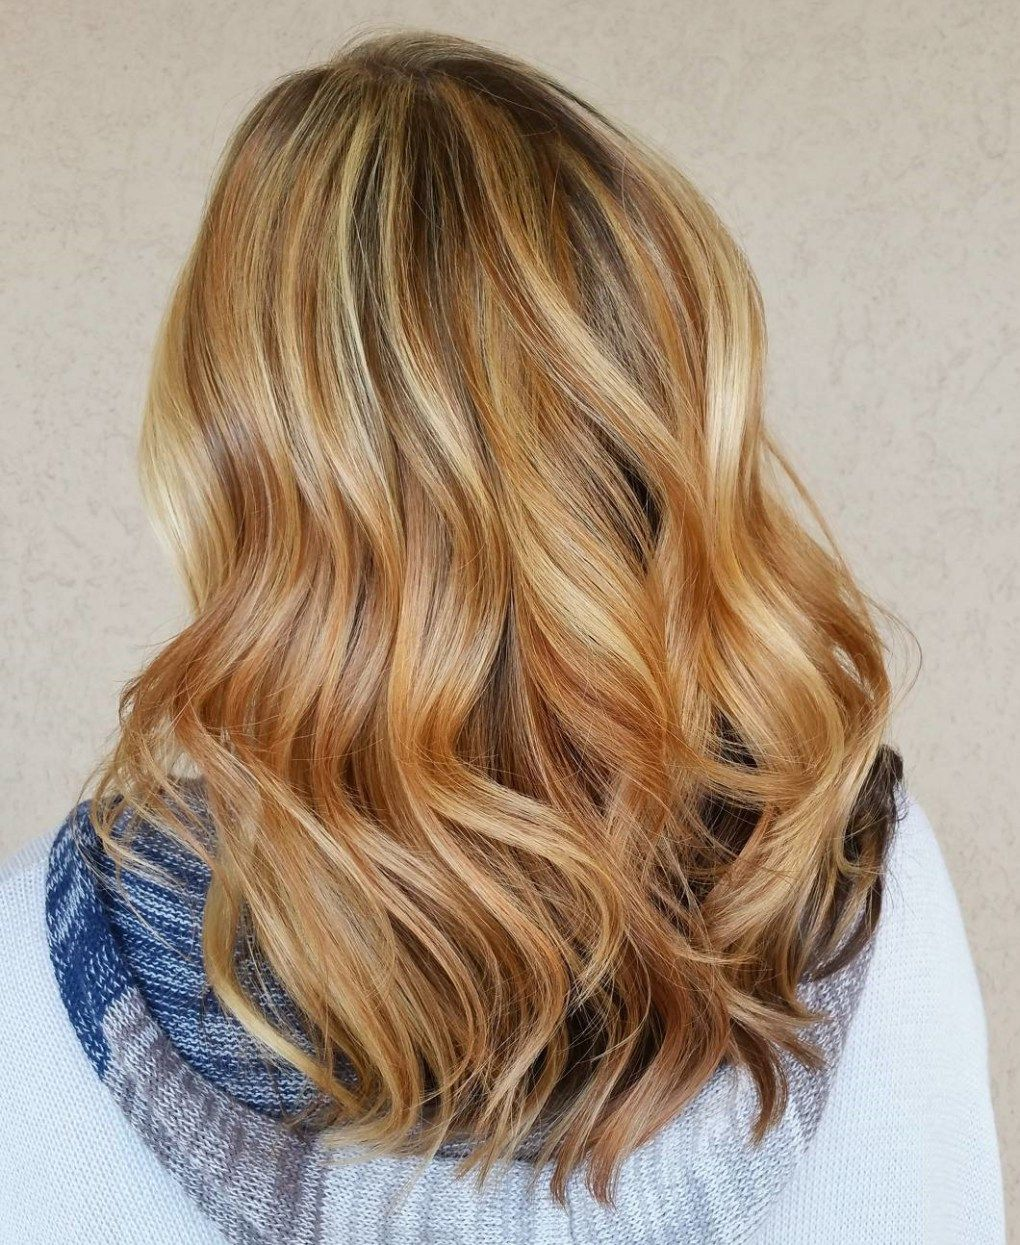 Red Highlights Ideas for Blonde, Brown and Black Hair |Red Brown Hair Color With Blonde Highlights